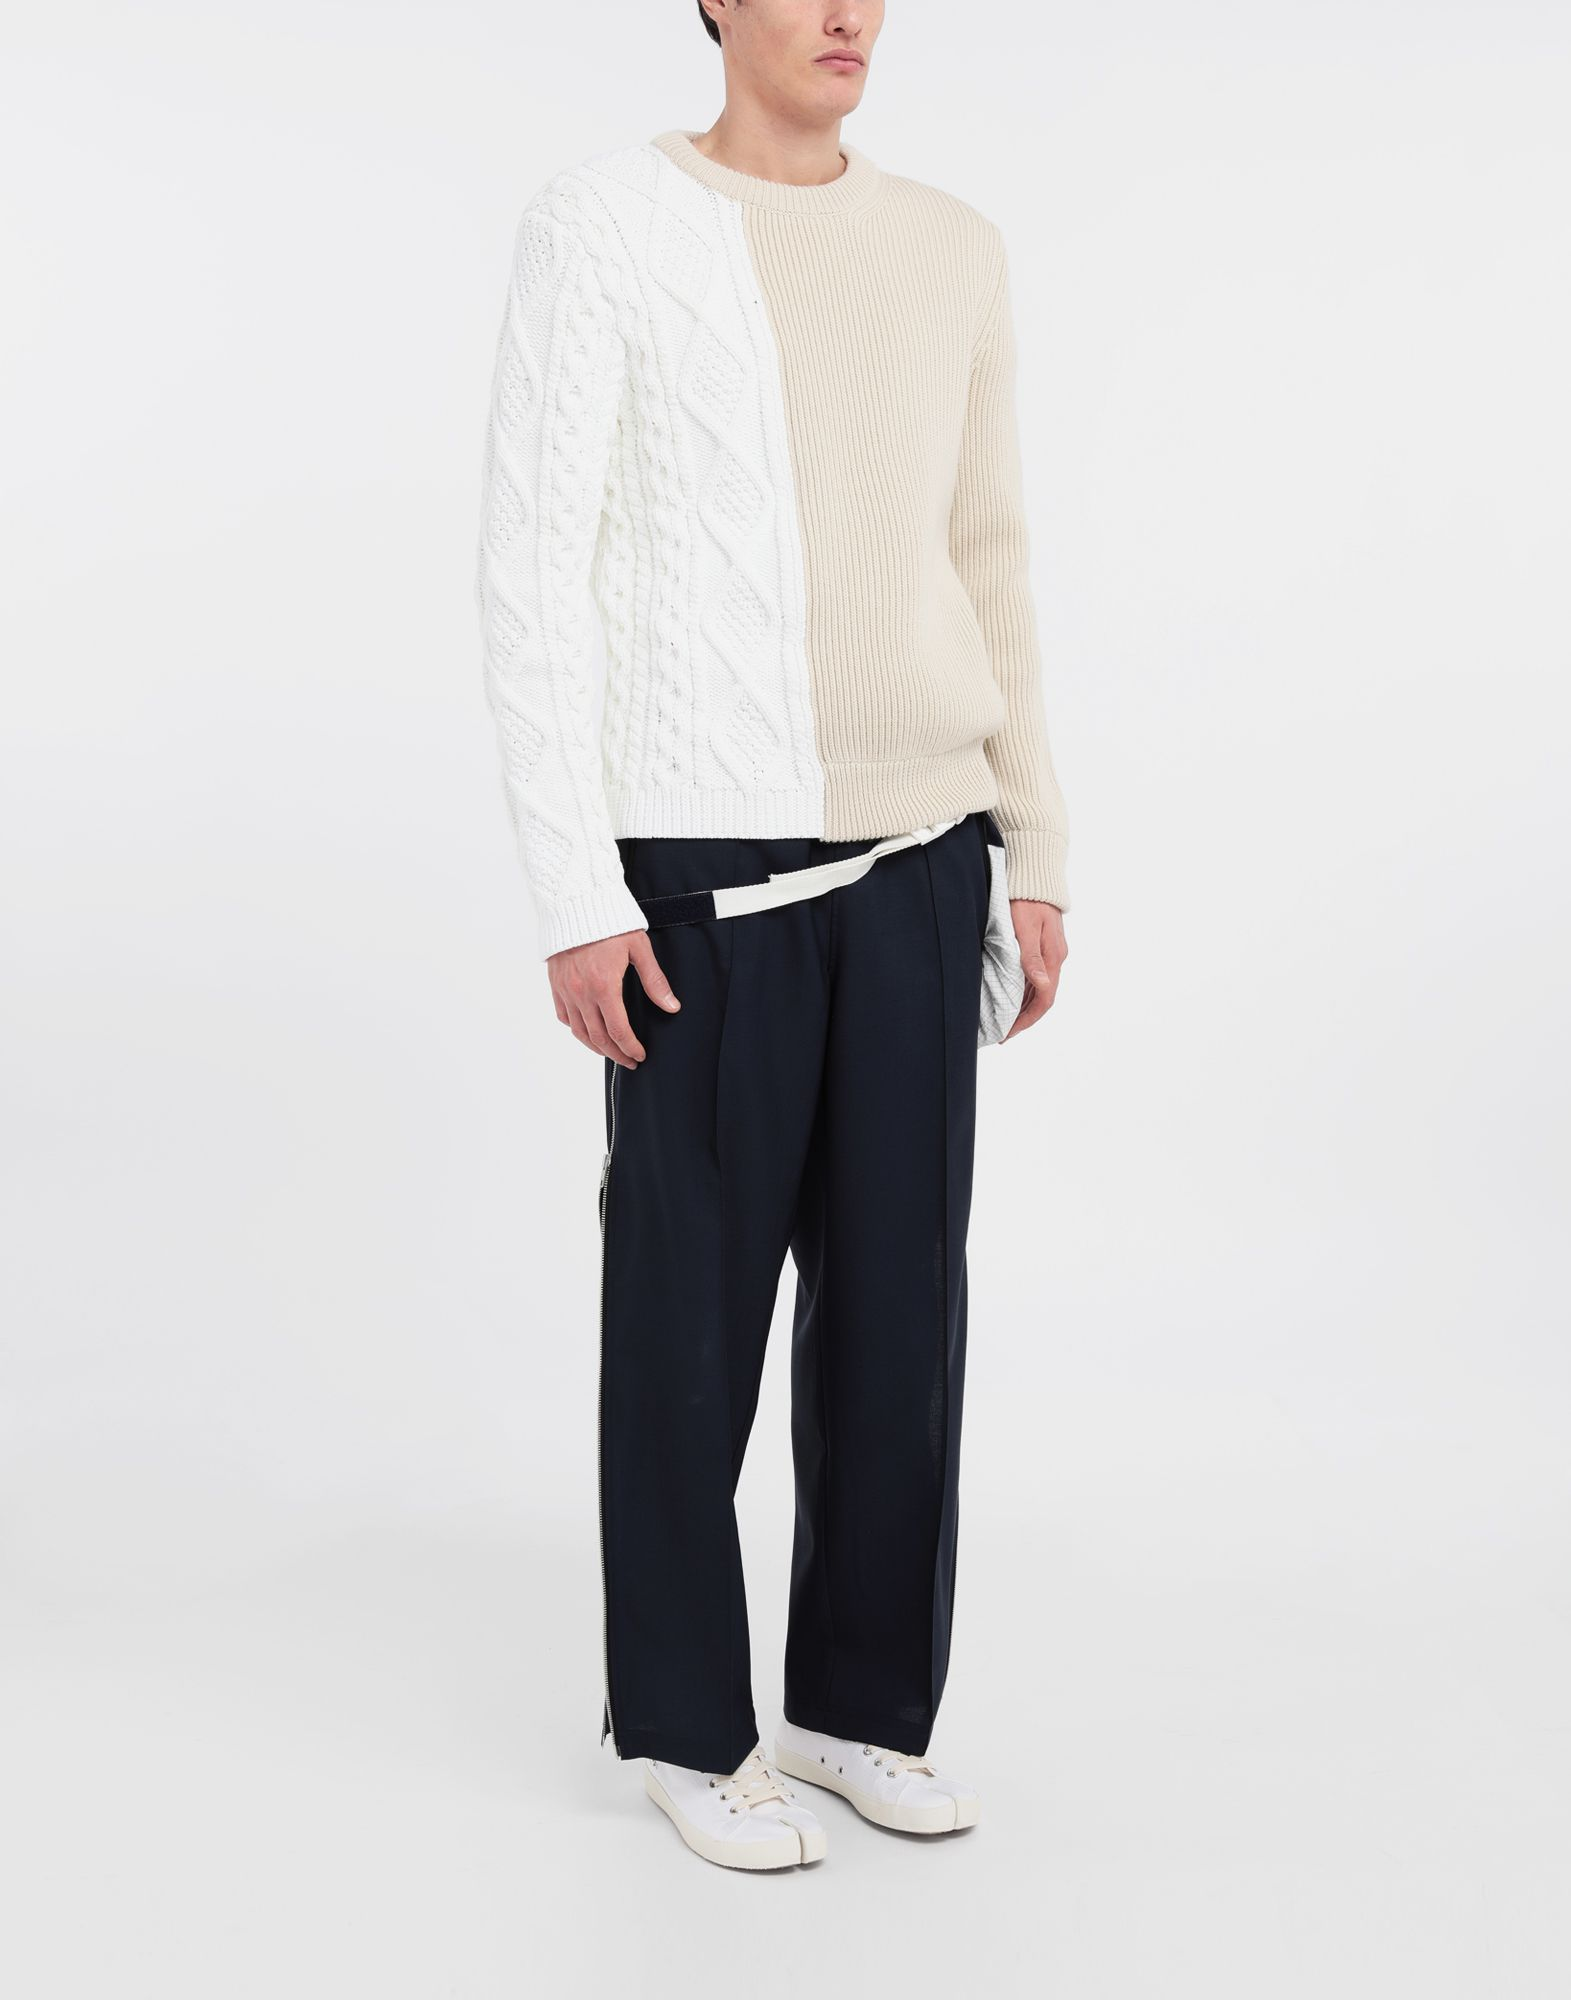 MAISON MARGIELA Bumbag pocket lining pants Casual pants Man d